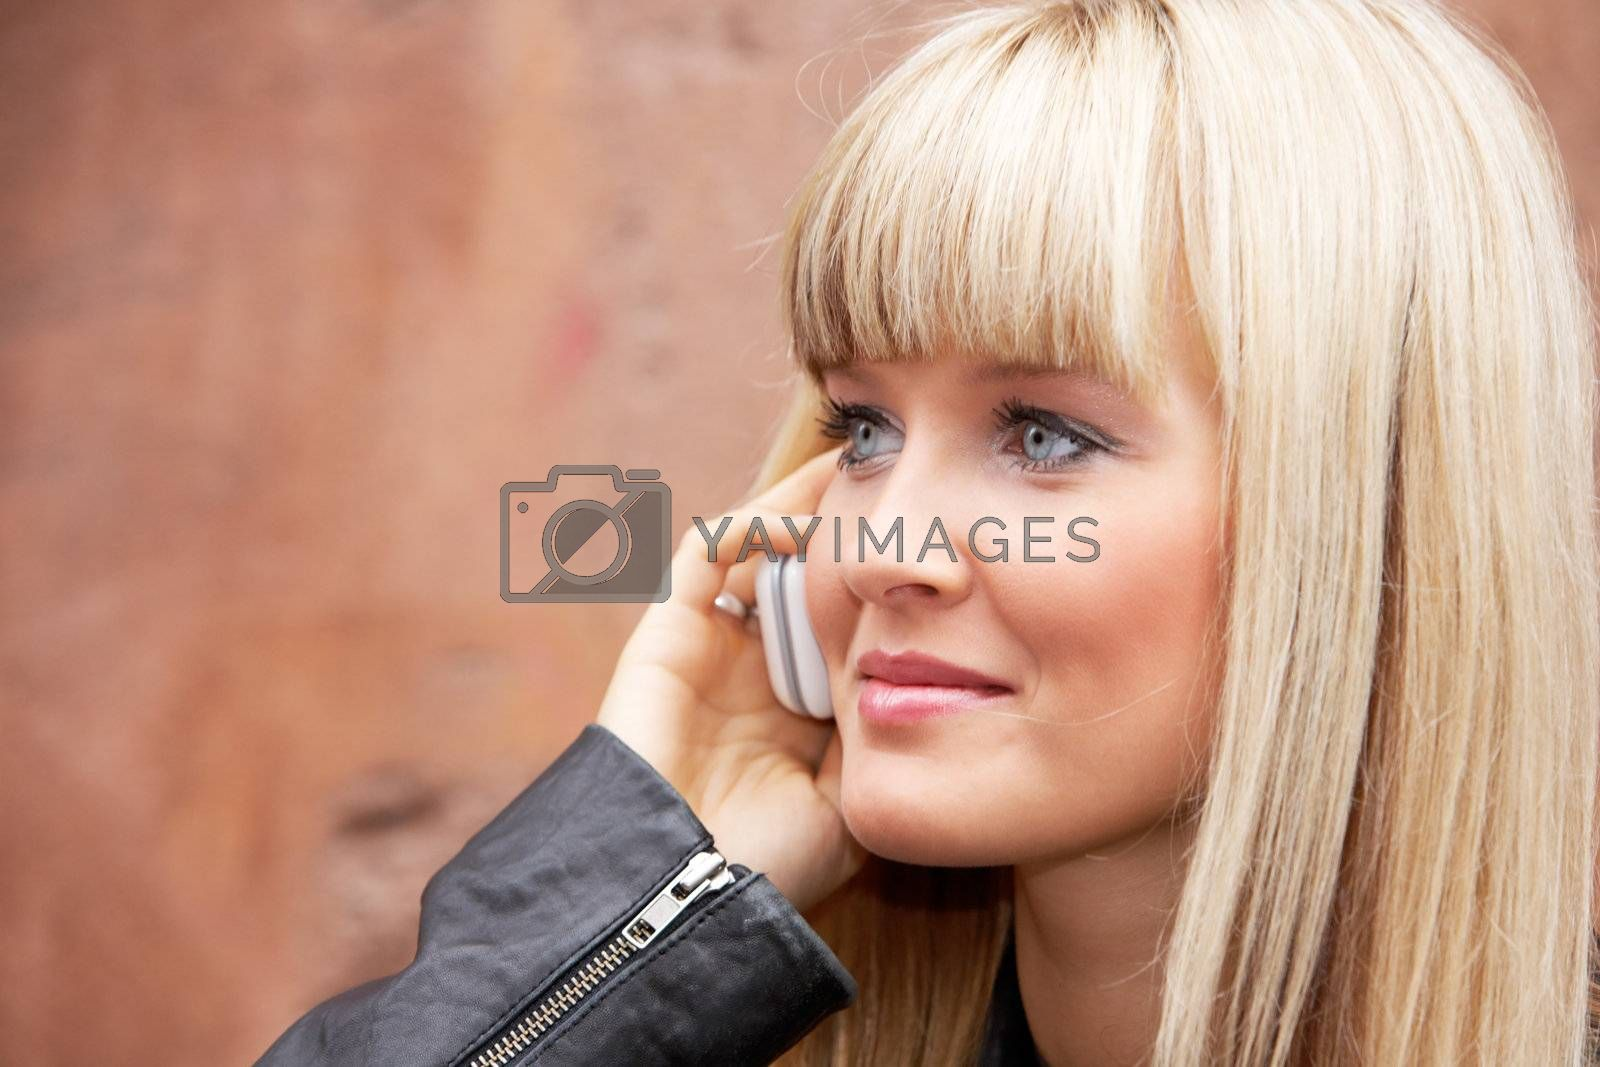 Young woman using mobile phone by building wall